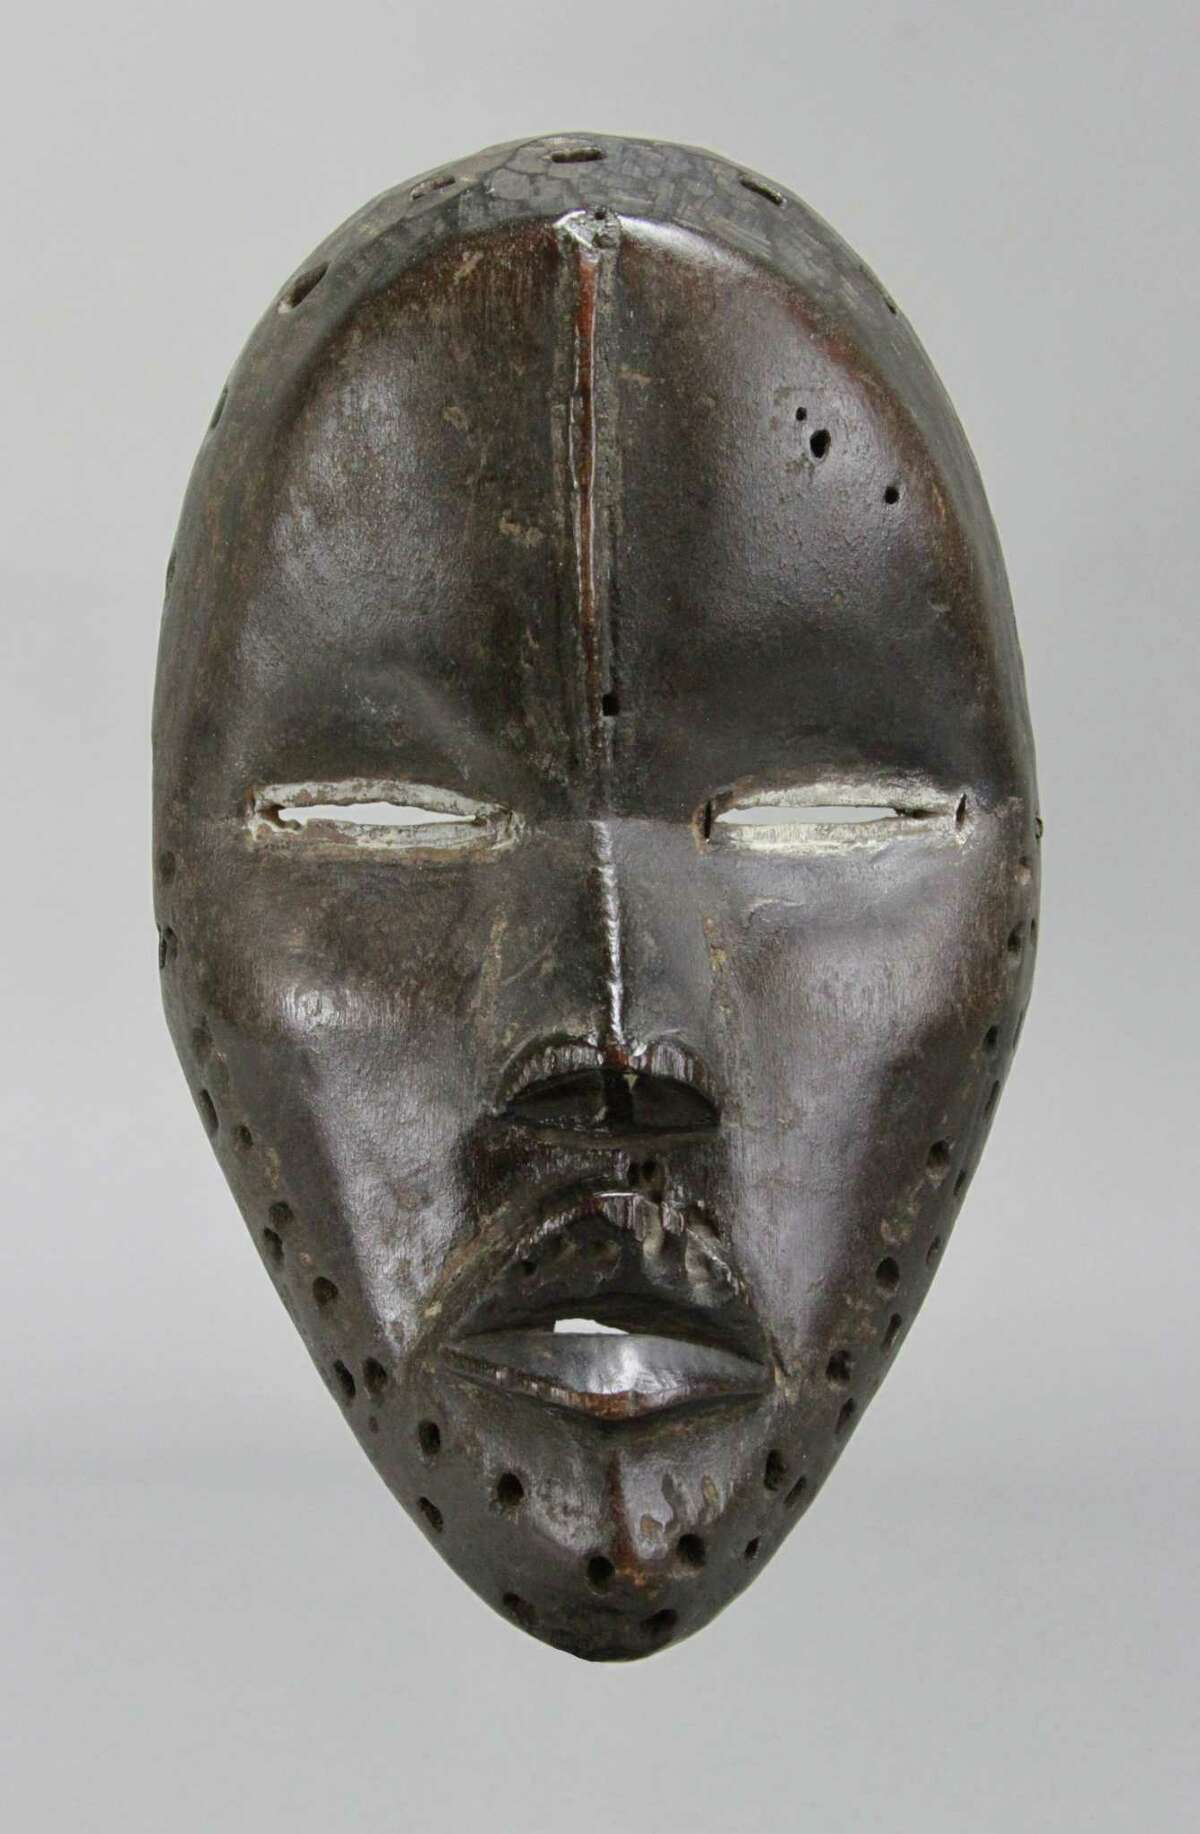 This Deangle mask of the Dan, or Gio, people of Liberia will be among the pieces on display in